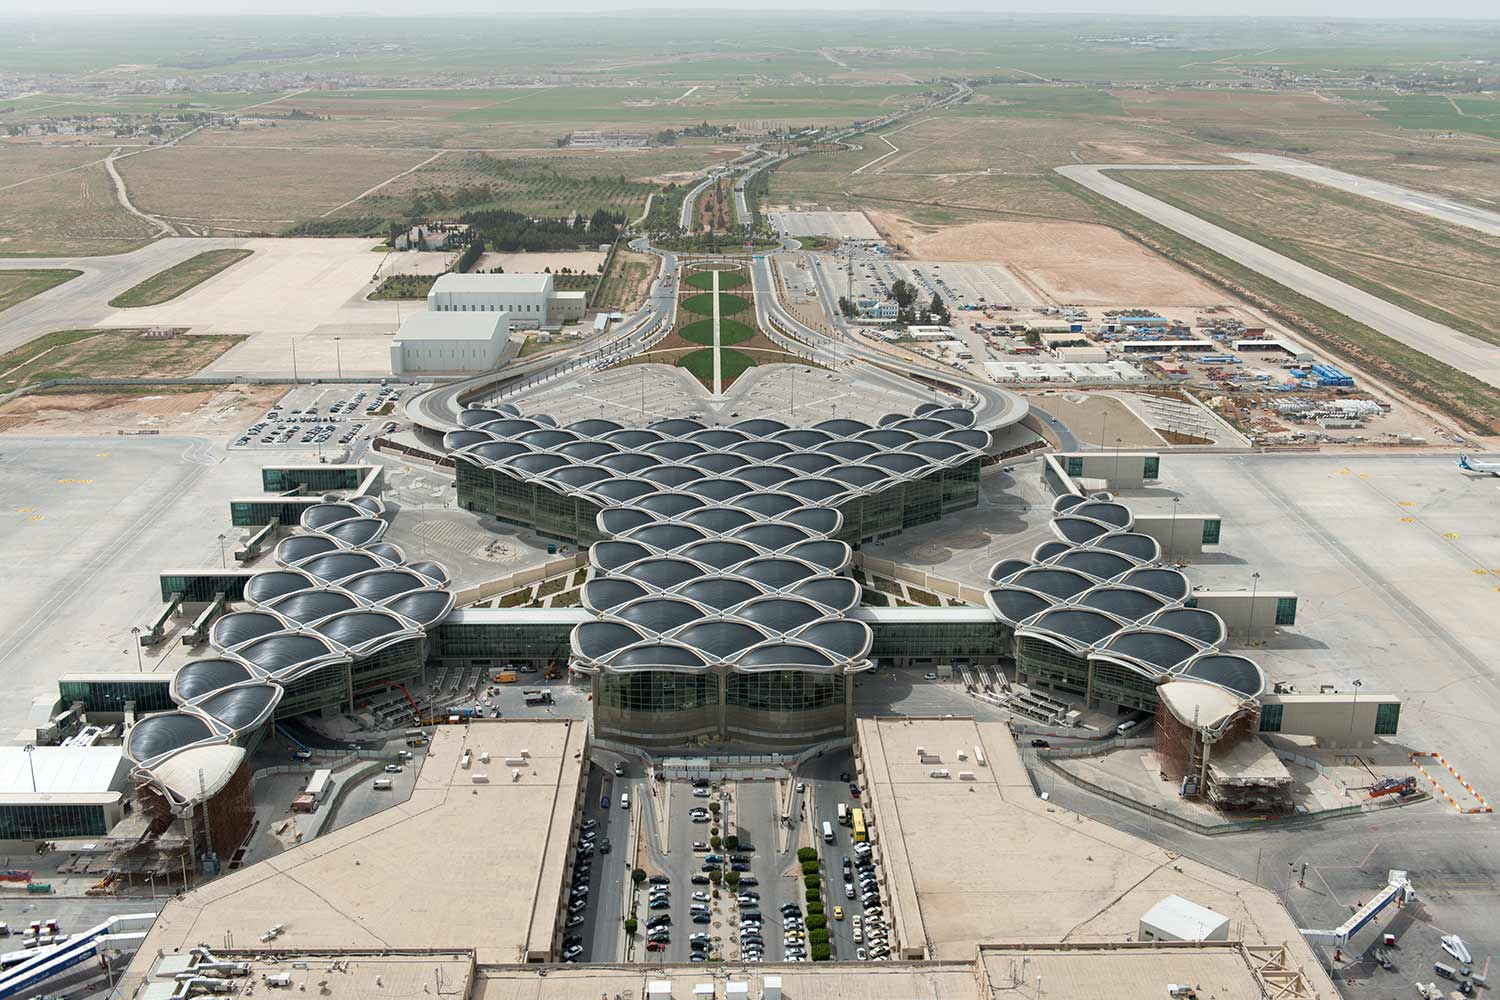 Aerial shot of Queen Alia Airport